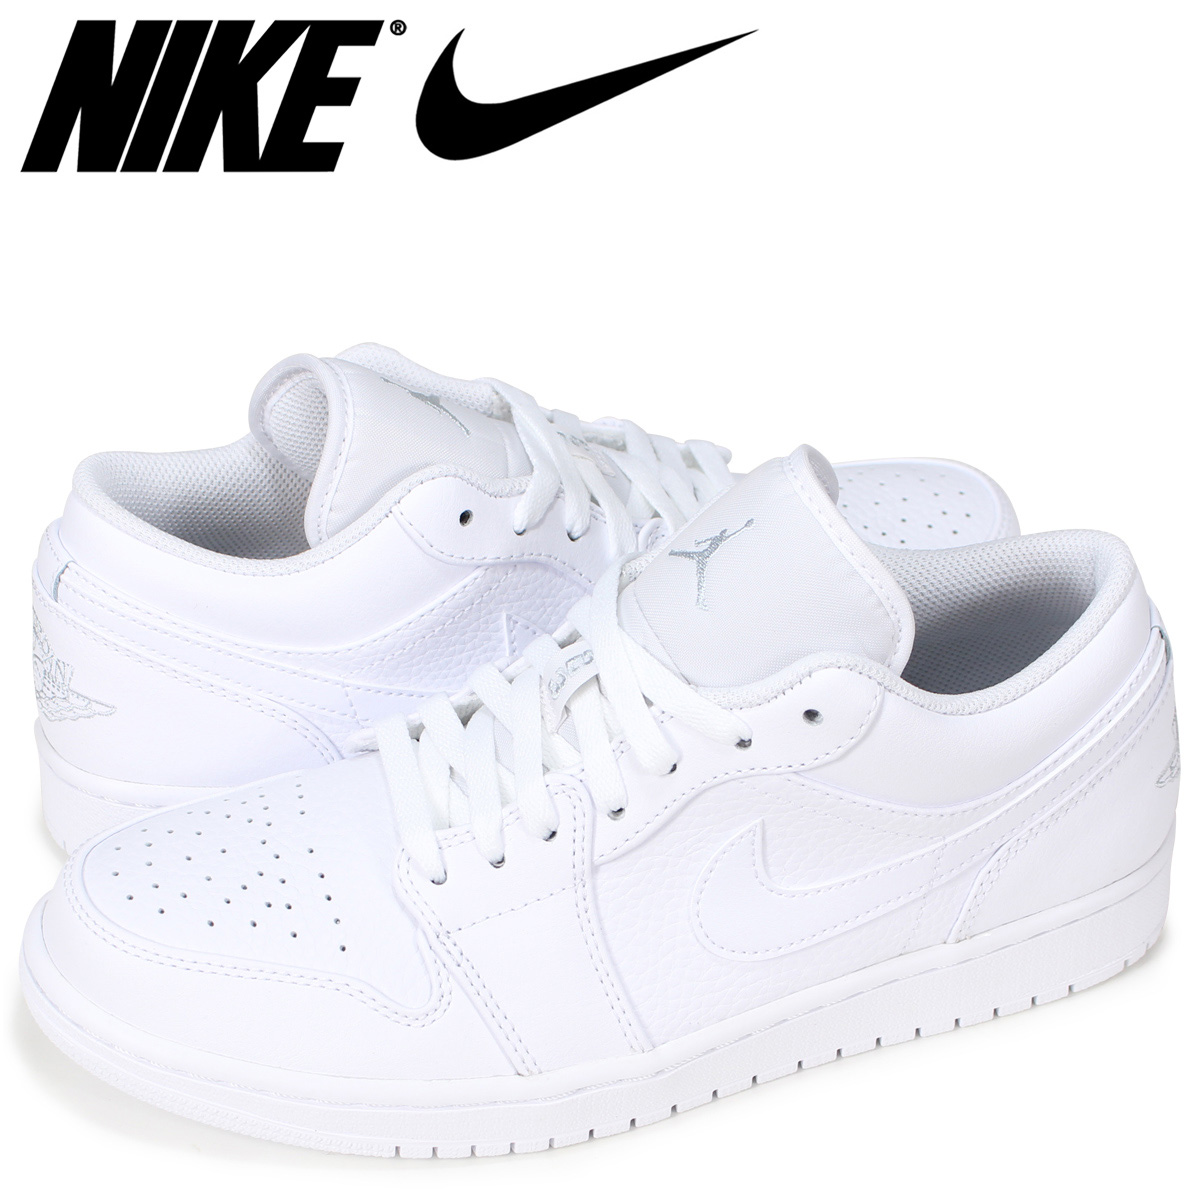 separation shoes 14439 4eaa5 NIKE AIR JORDAN 1 LOW Nike Air Jordan 1 sneakers men white 553,558-109